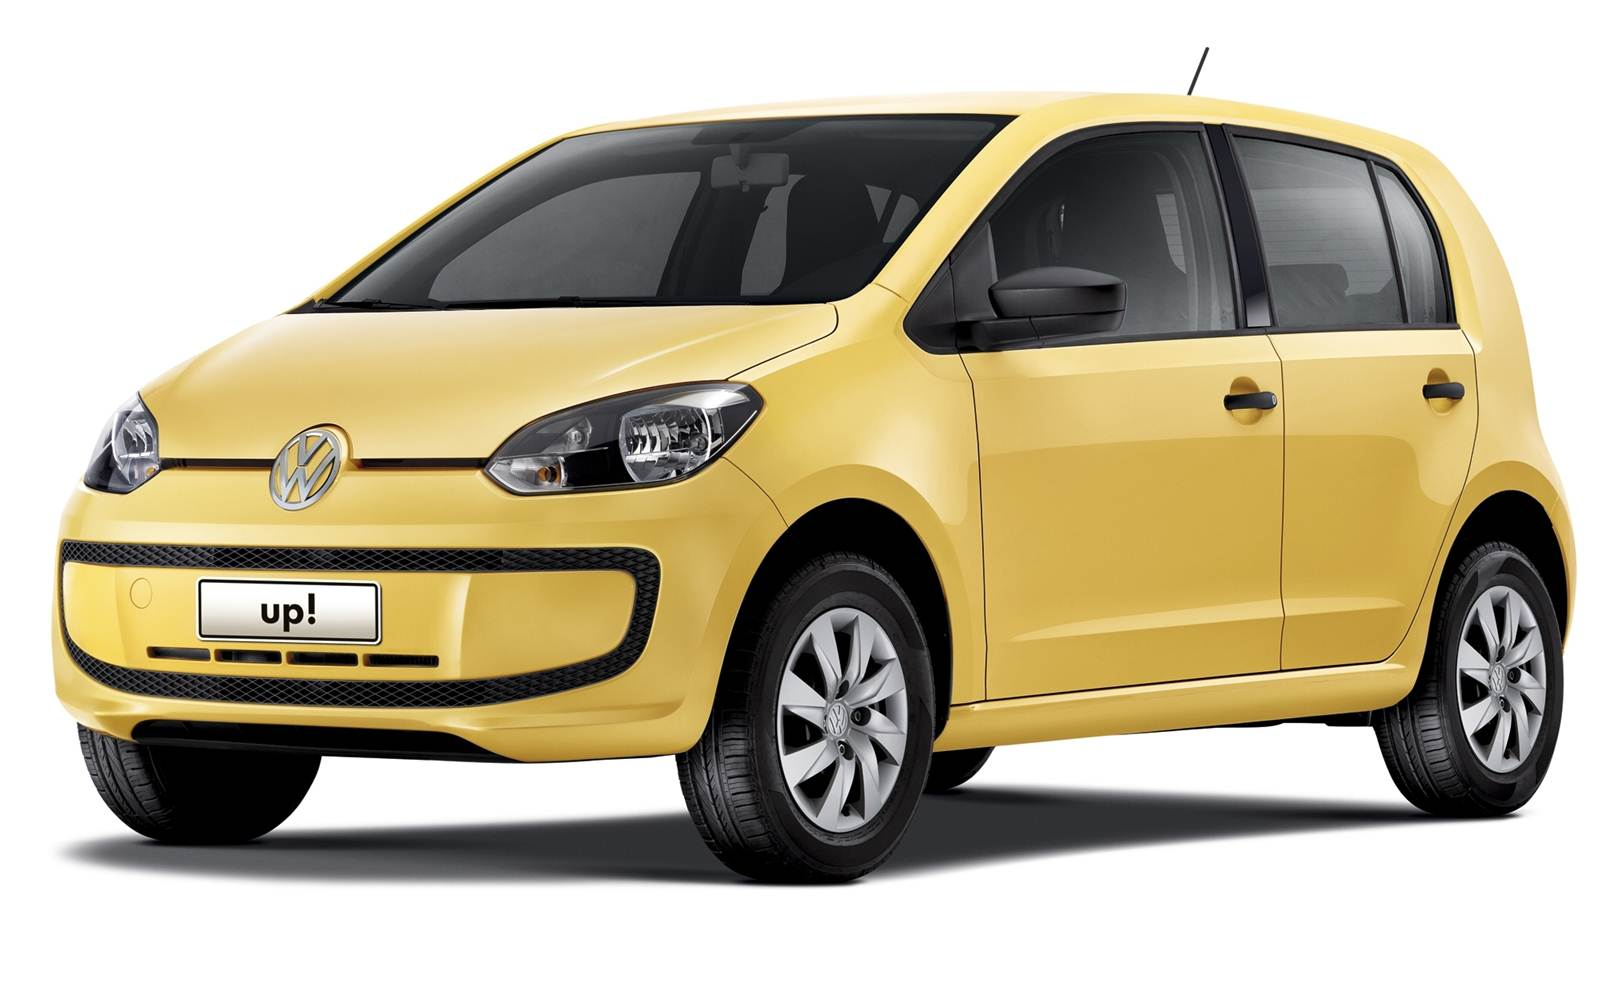 Volkswagen up! - Take up! - rodas de 13 polegadas